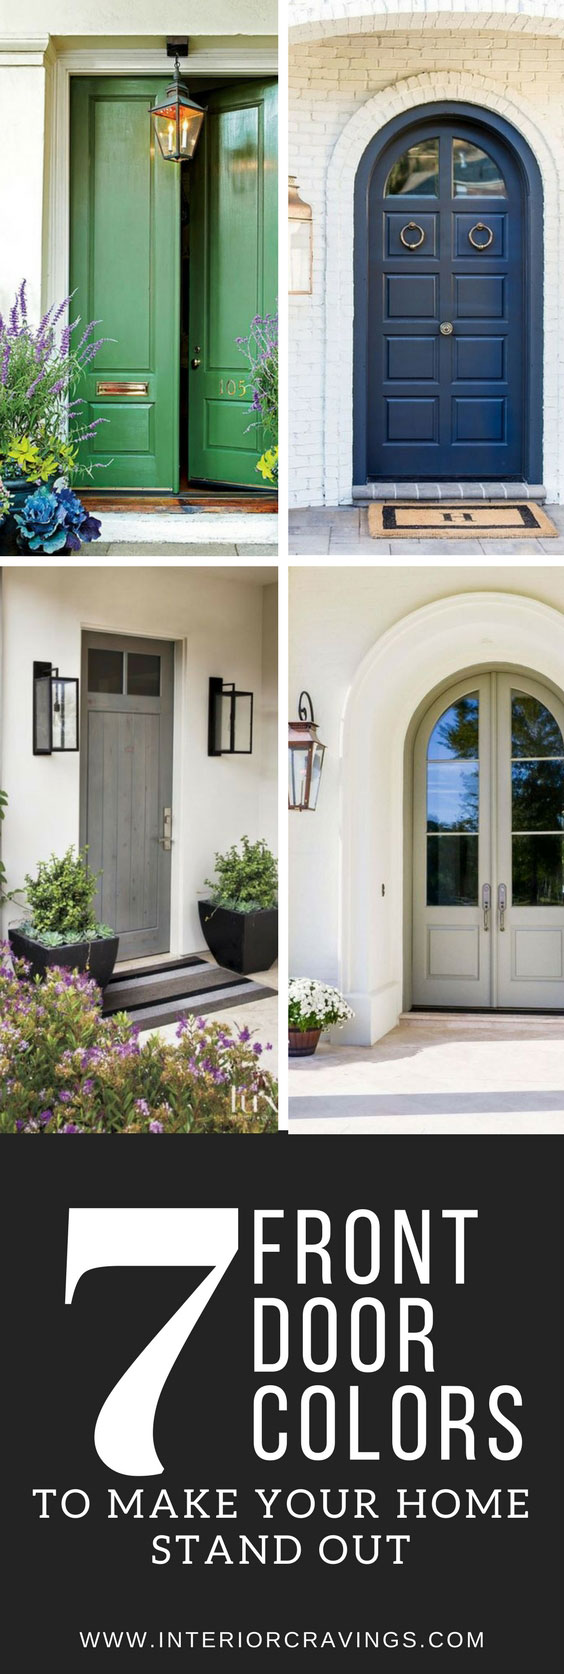 7 FRONT DOOR COLORS To Make Your Home Stand Out And Add Character To Your  House